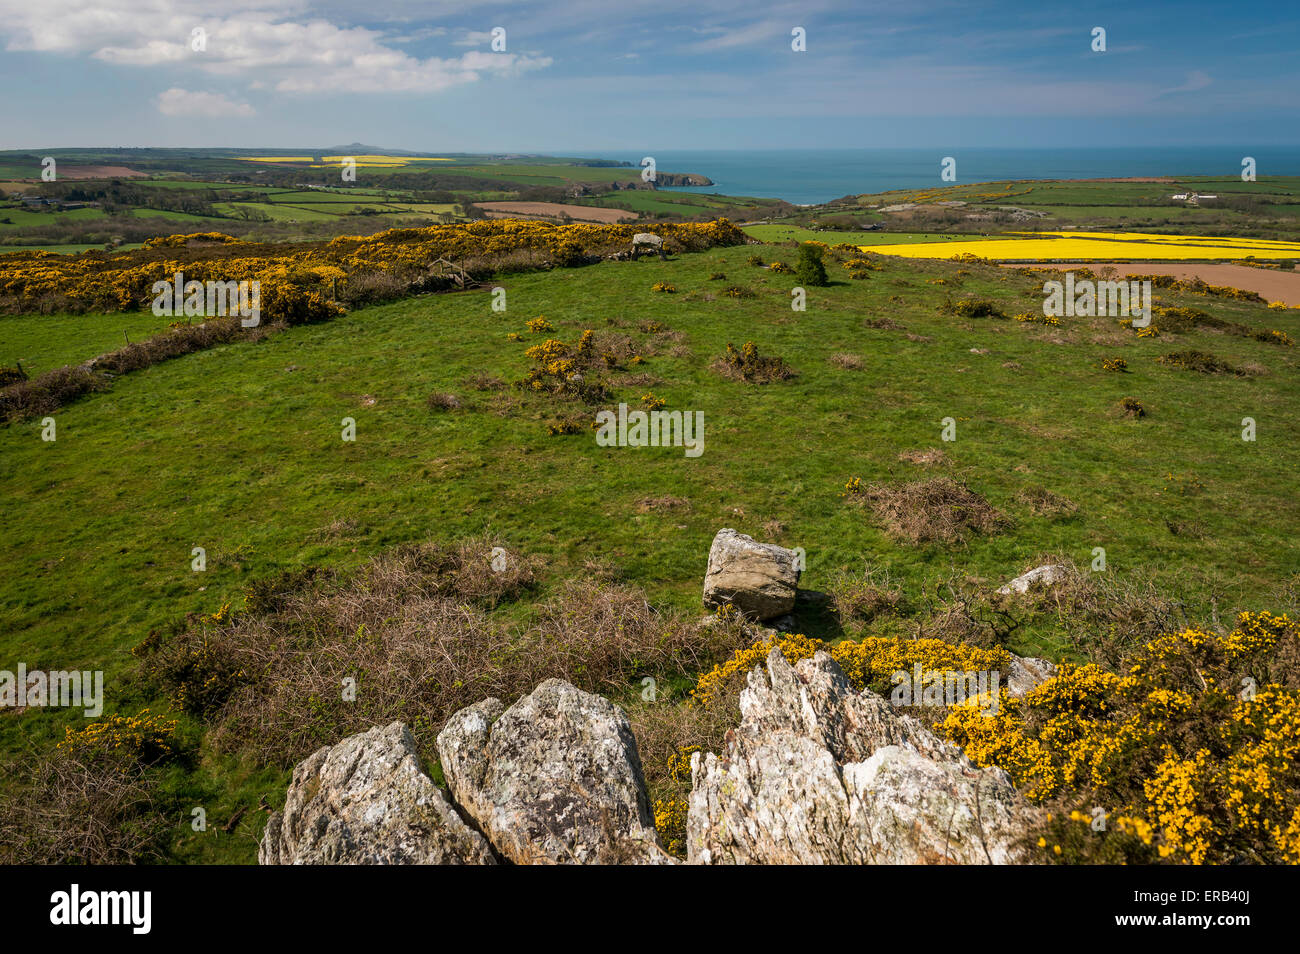 View of the Pembrokeshire Coast and Ffyst Samson Neolithic Chambered Tomb - Stock Image